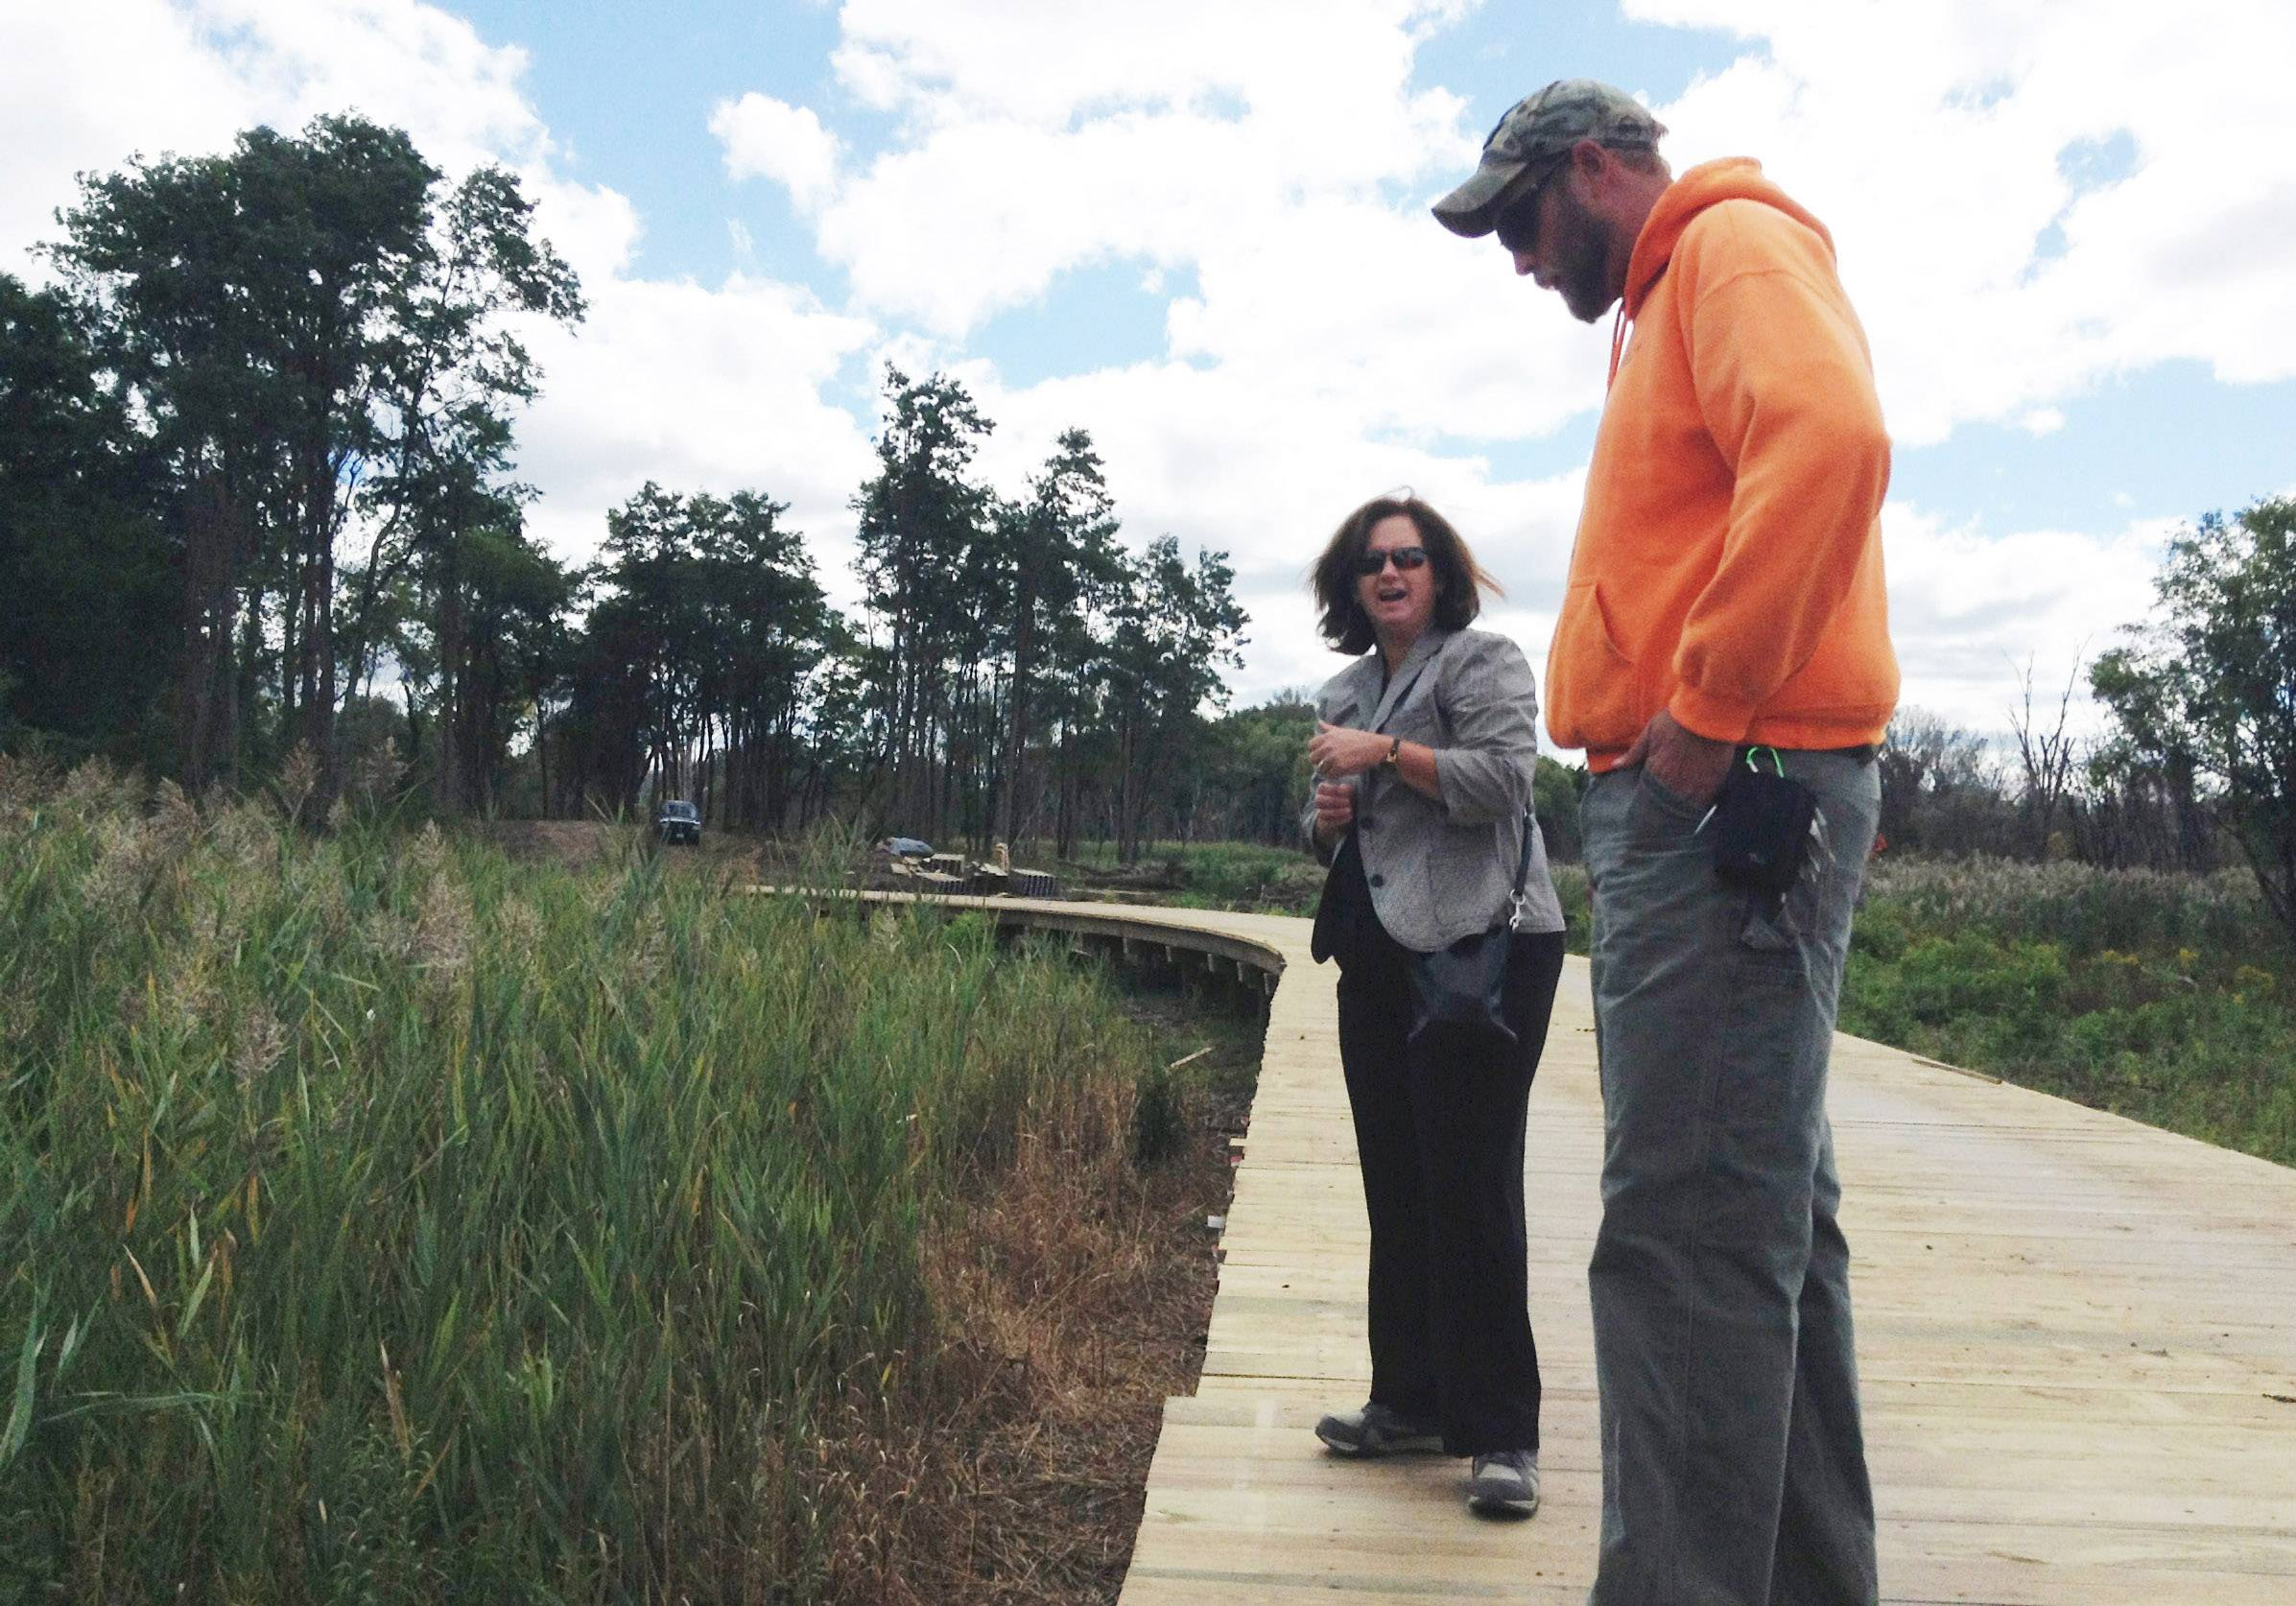 Libertyville Township Supervisor Kathleen O'Connor and Damon Cederberg, township open space field coordinator, look over a section of the 400-foot long boardwalk being built over Bull Creek to connect township properties.